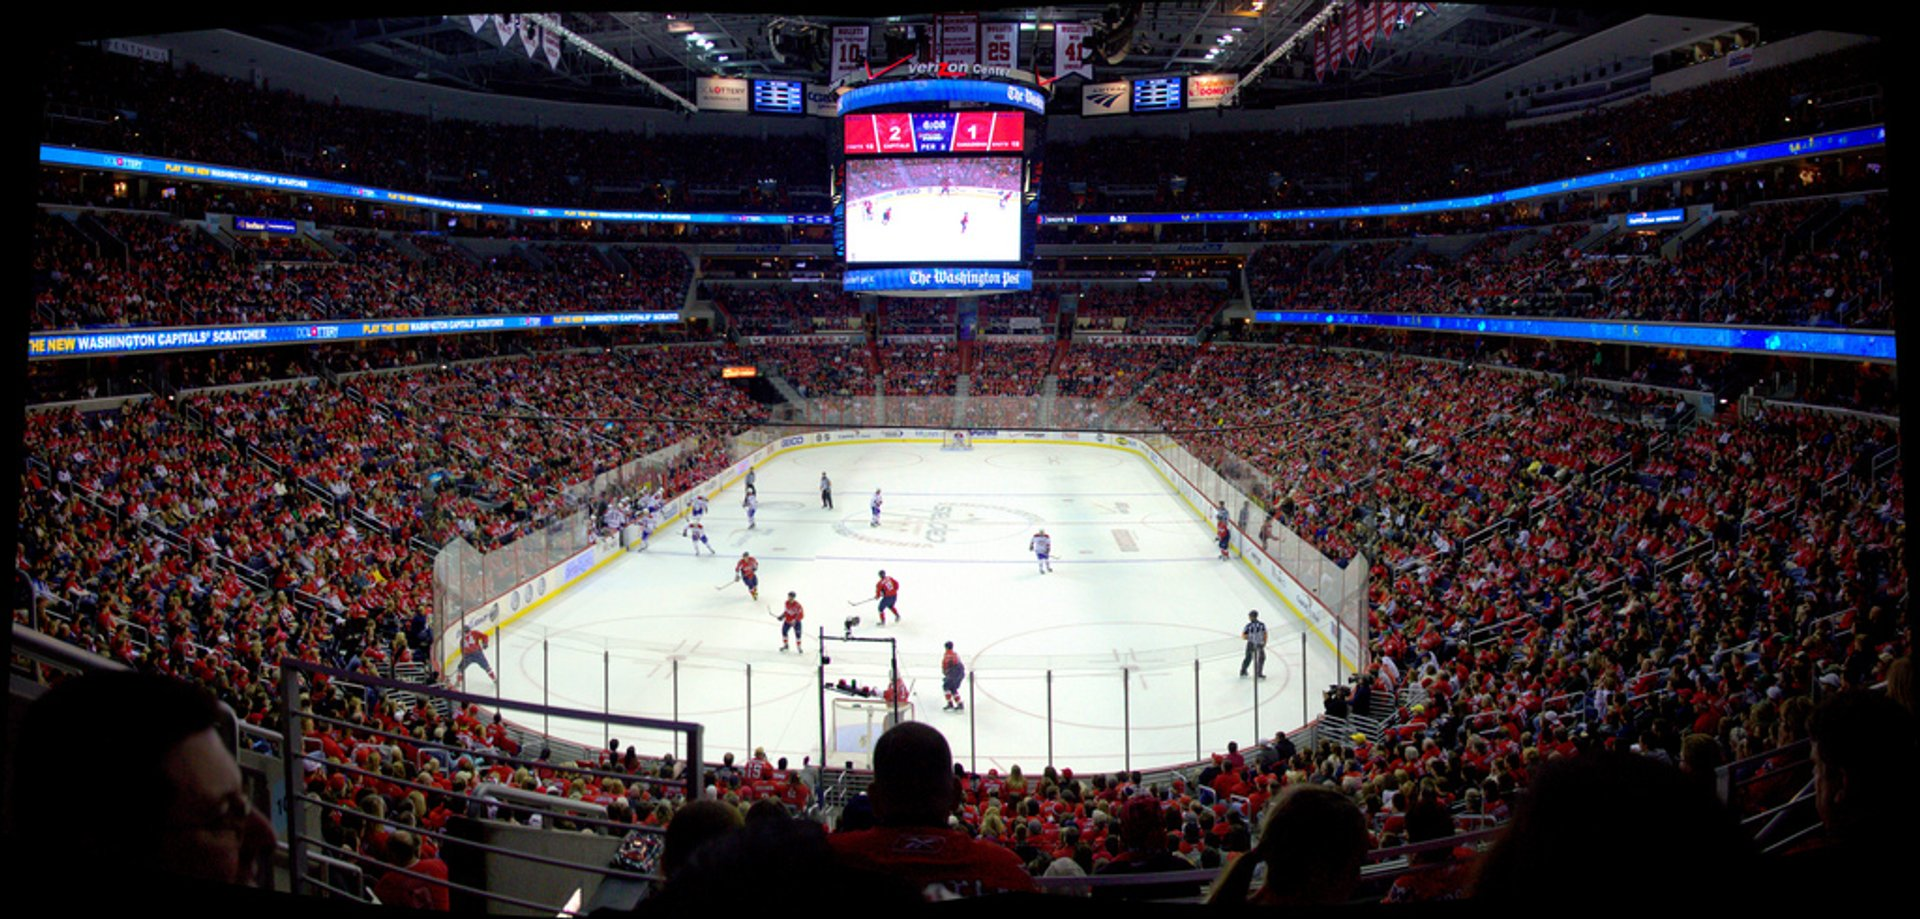 Washington Capitals Hockey in Washington, D.C. 2019 - Best Time